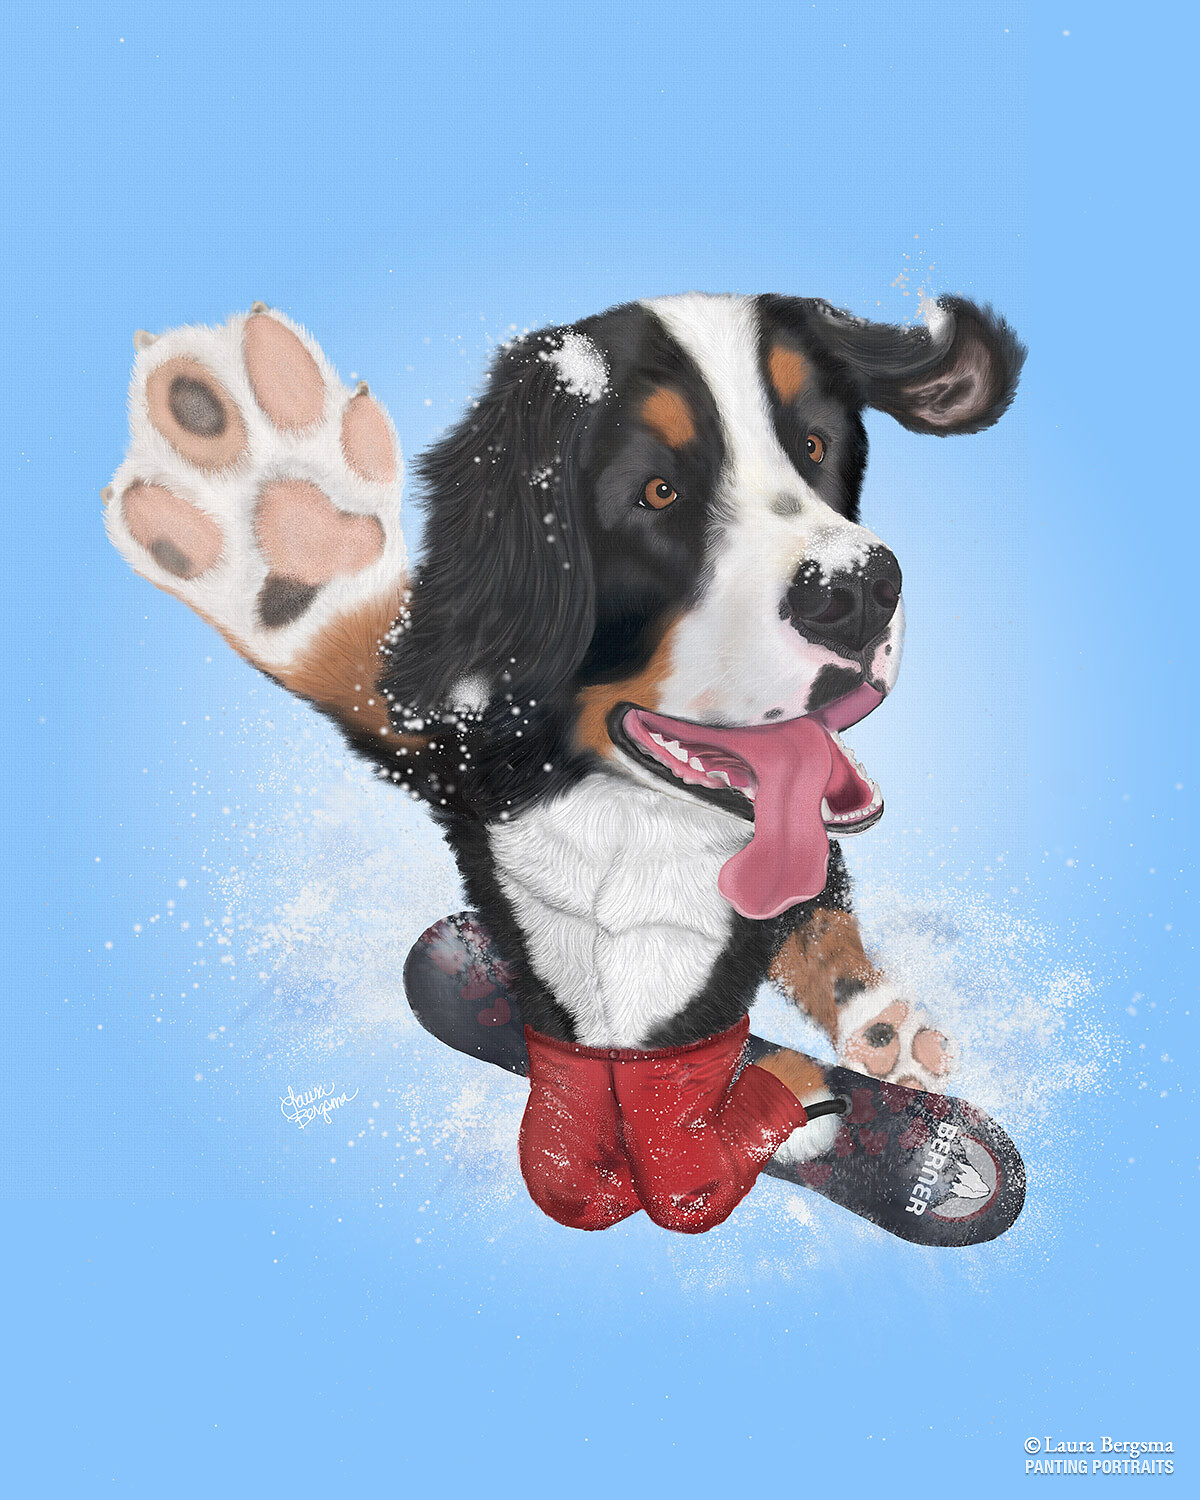 Bernese Mountain Dog Riding a Snowboard